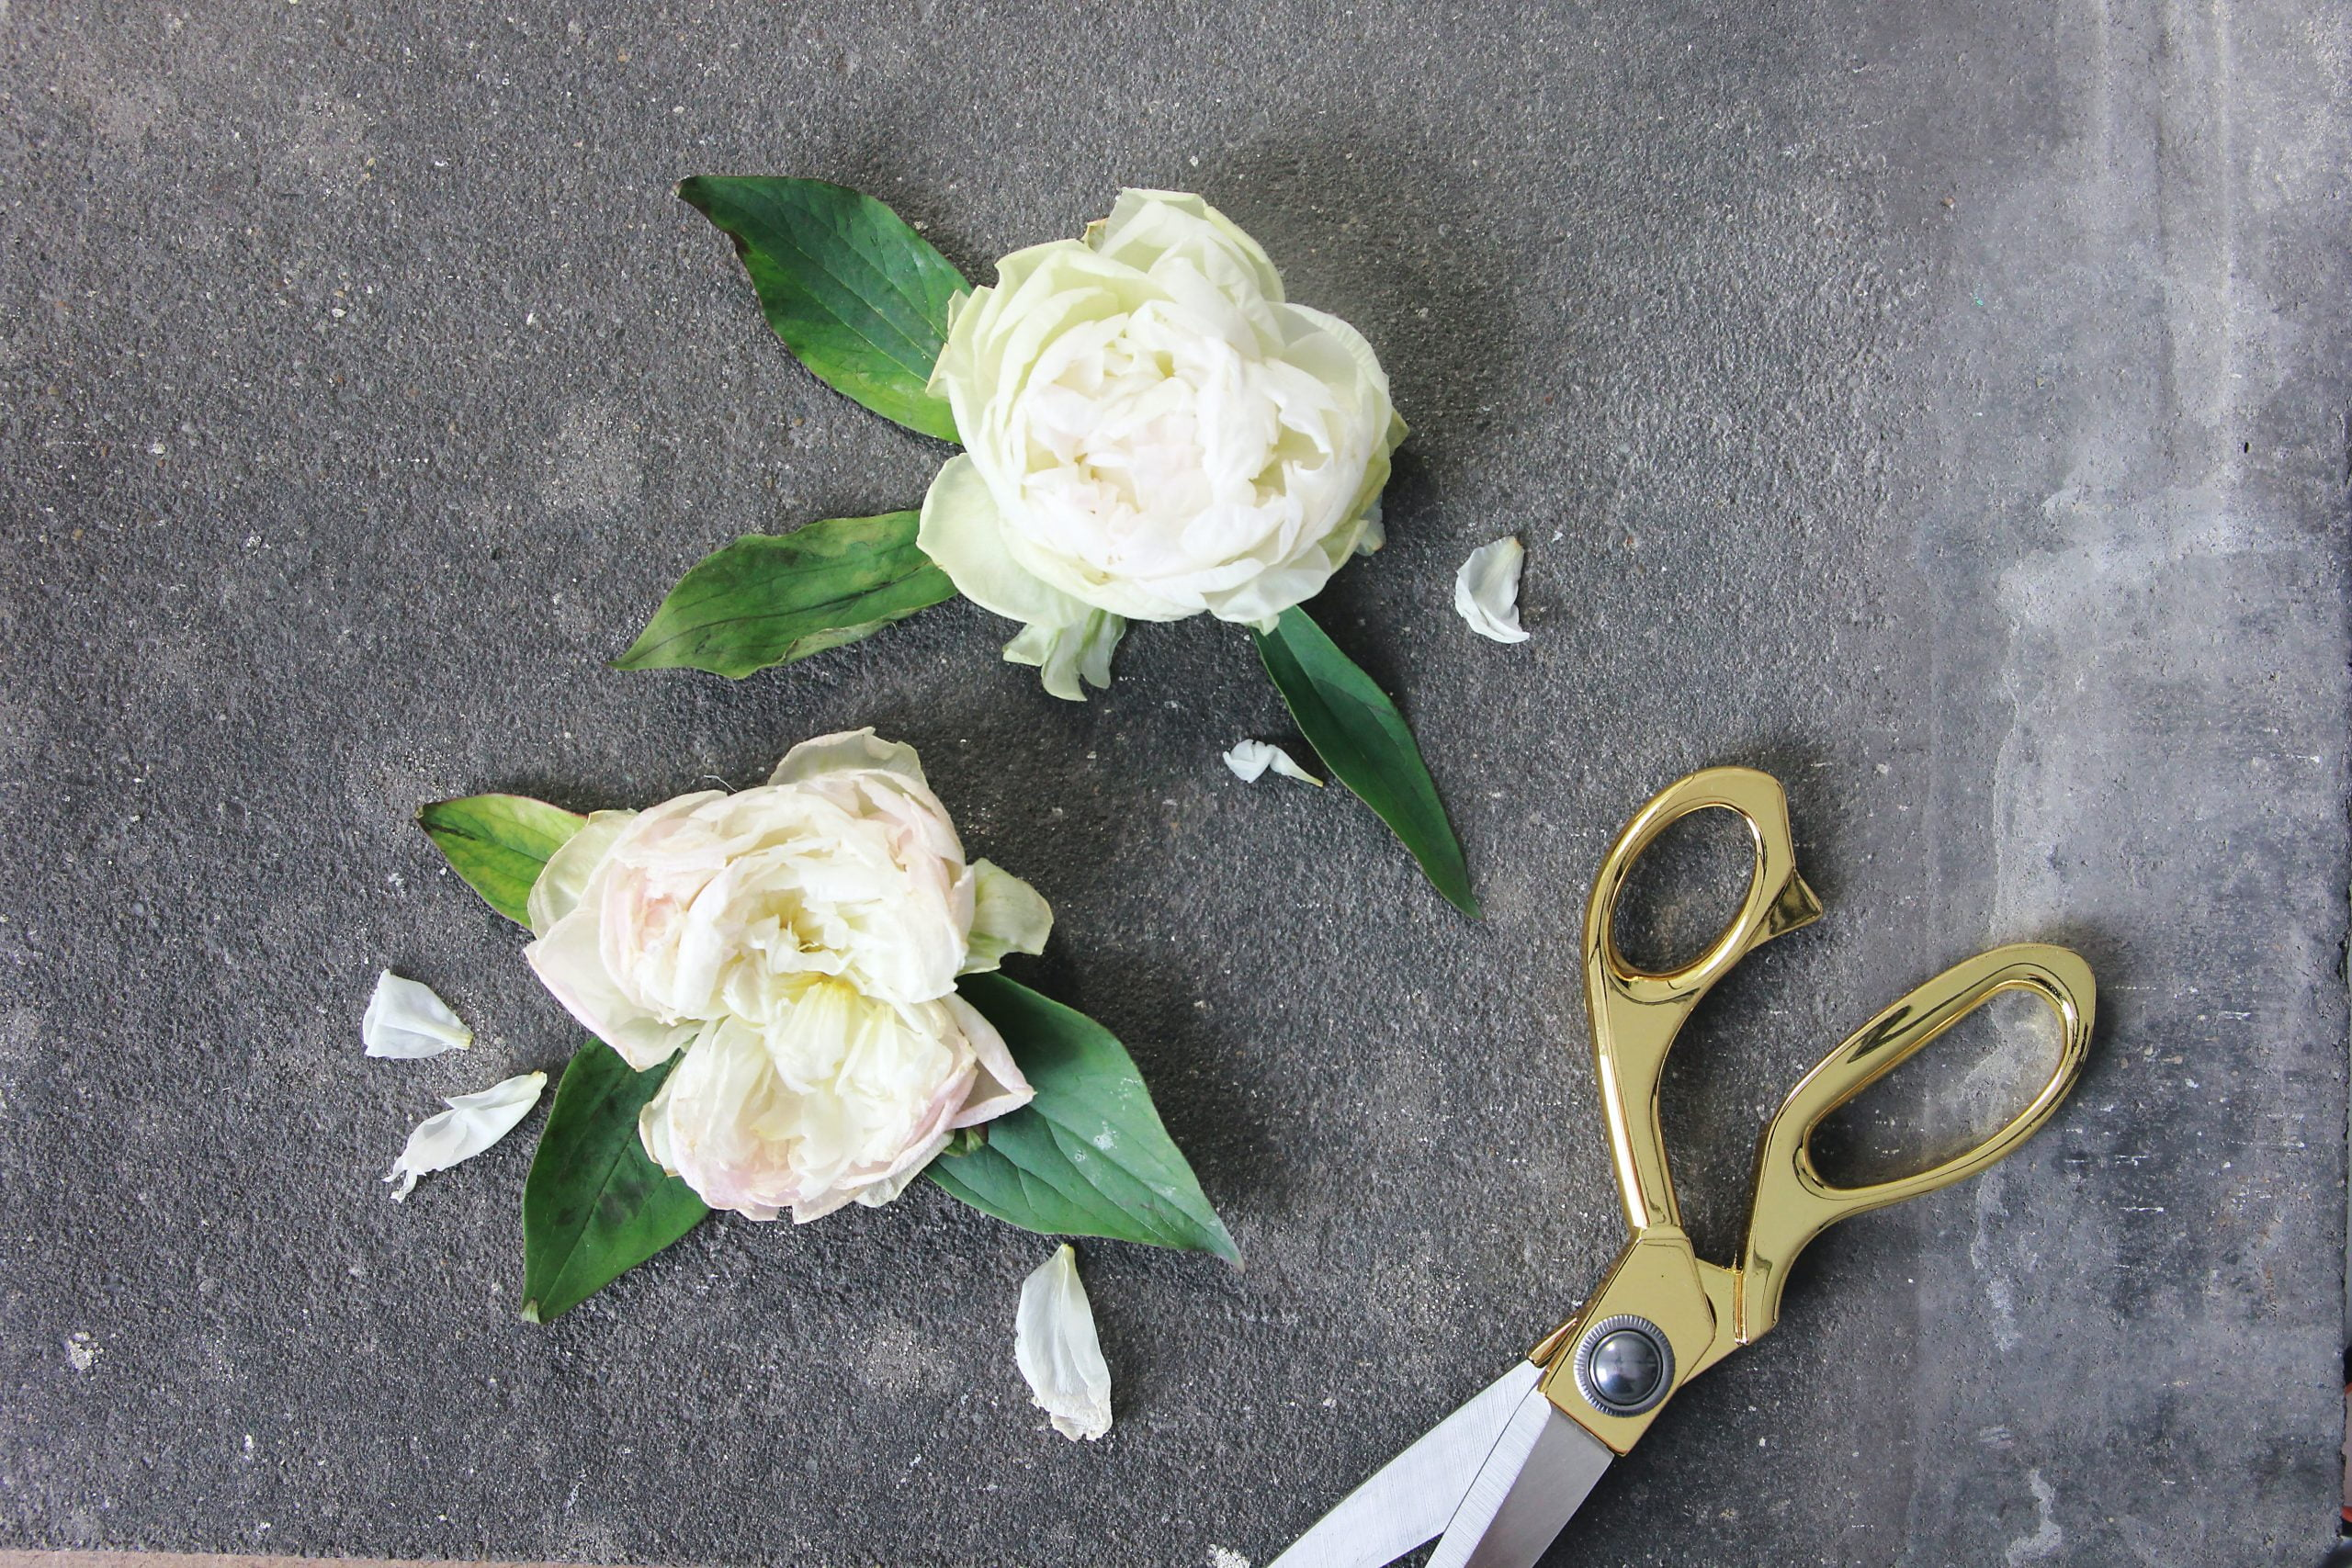 two white roses on a black table next to a pair of pruning sheers